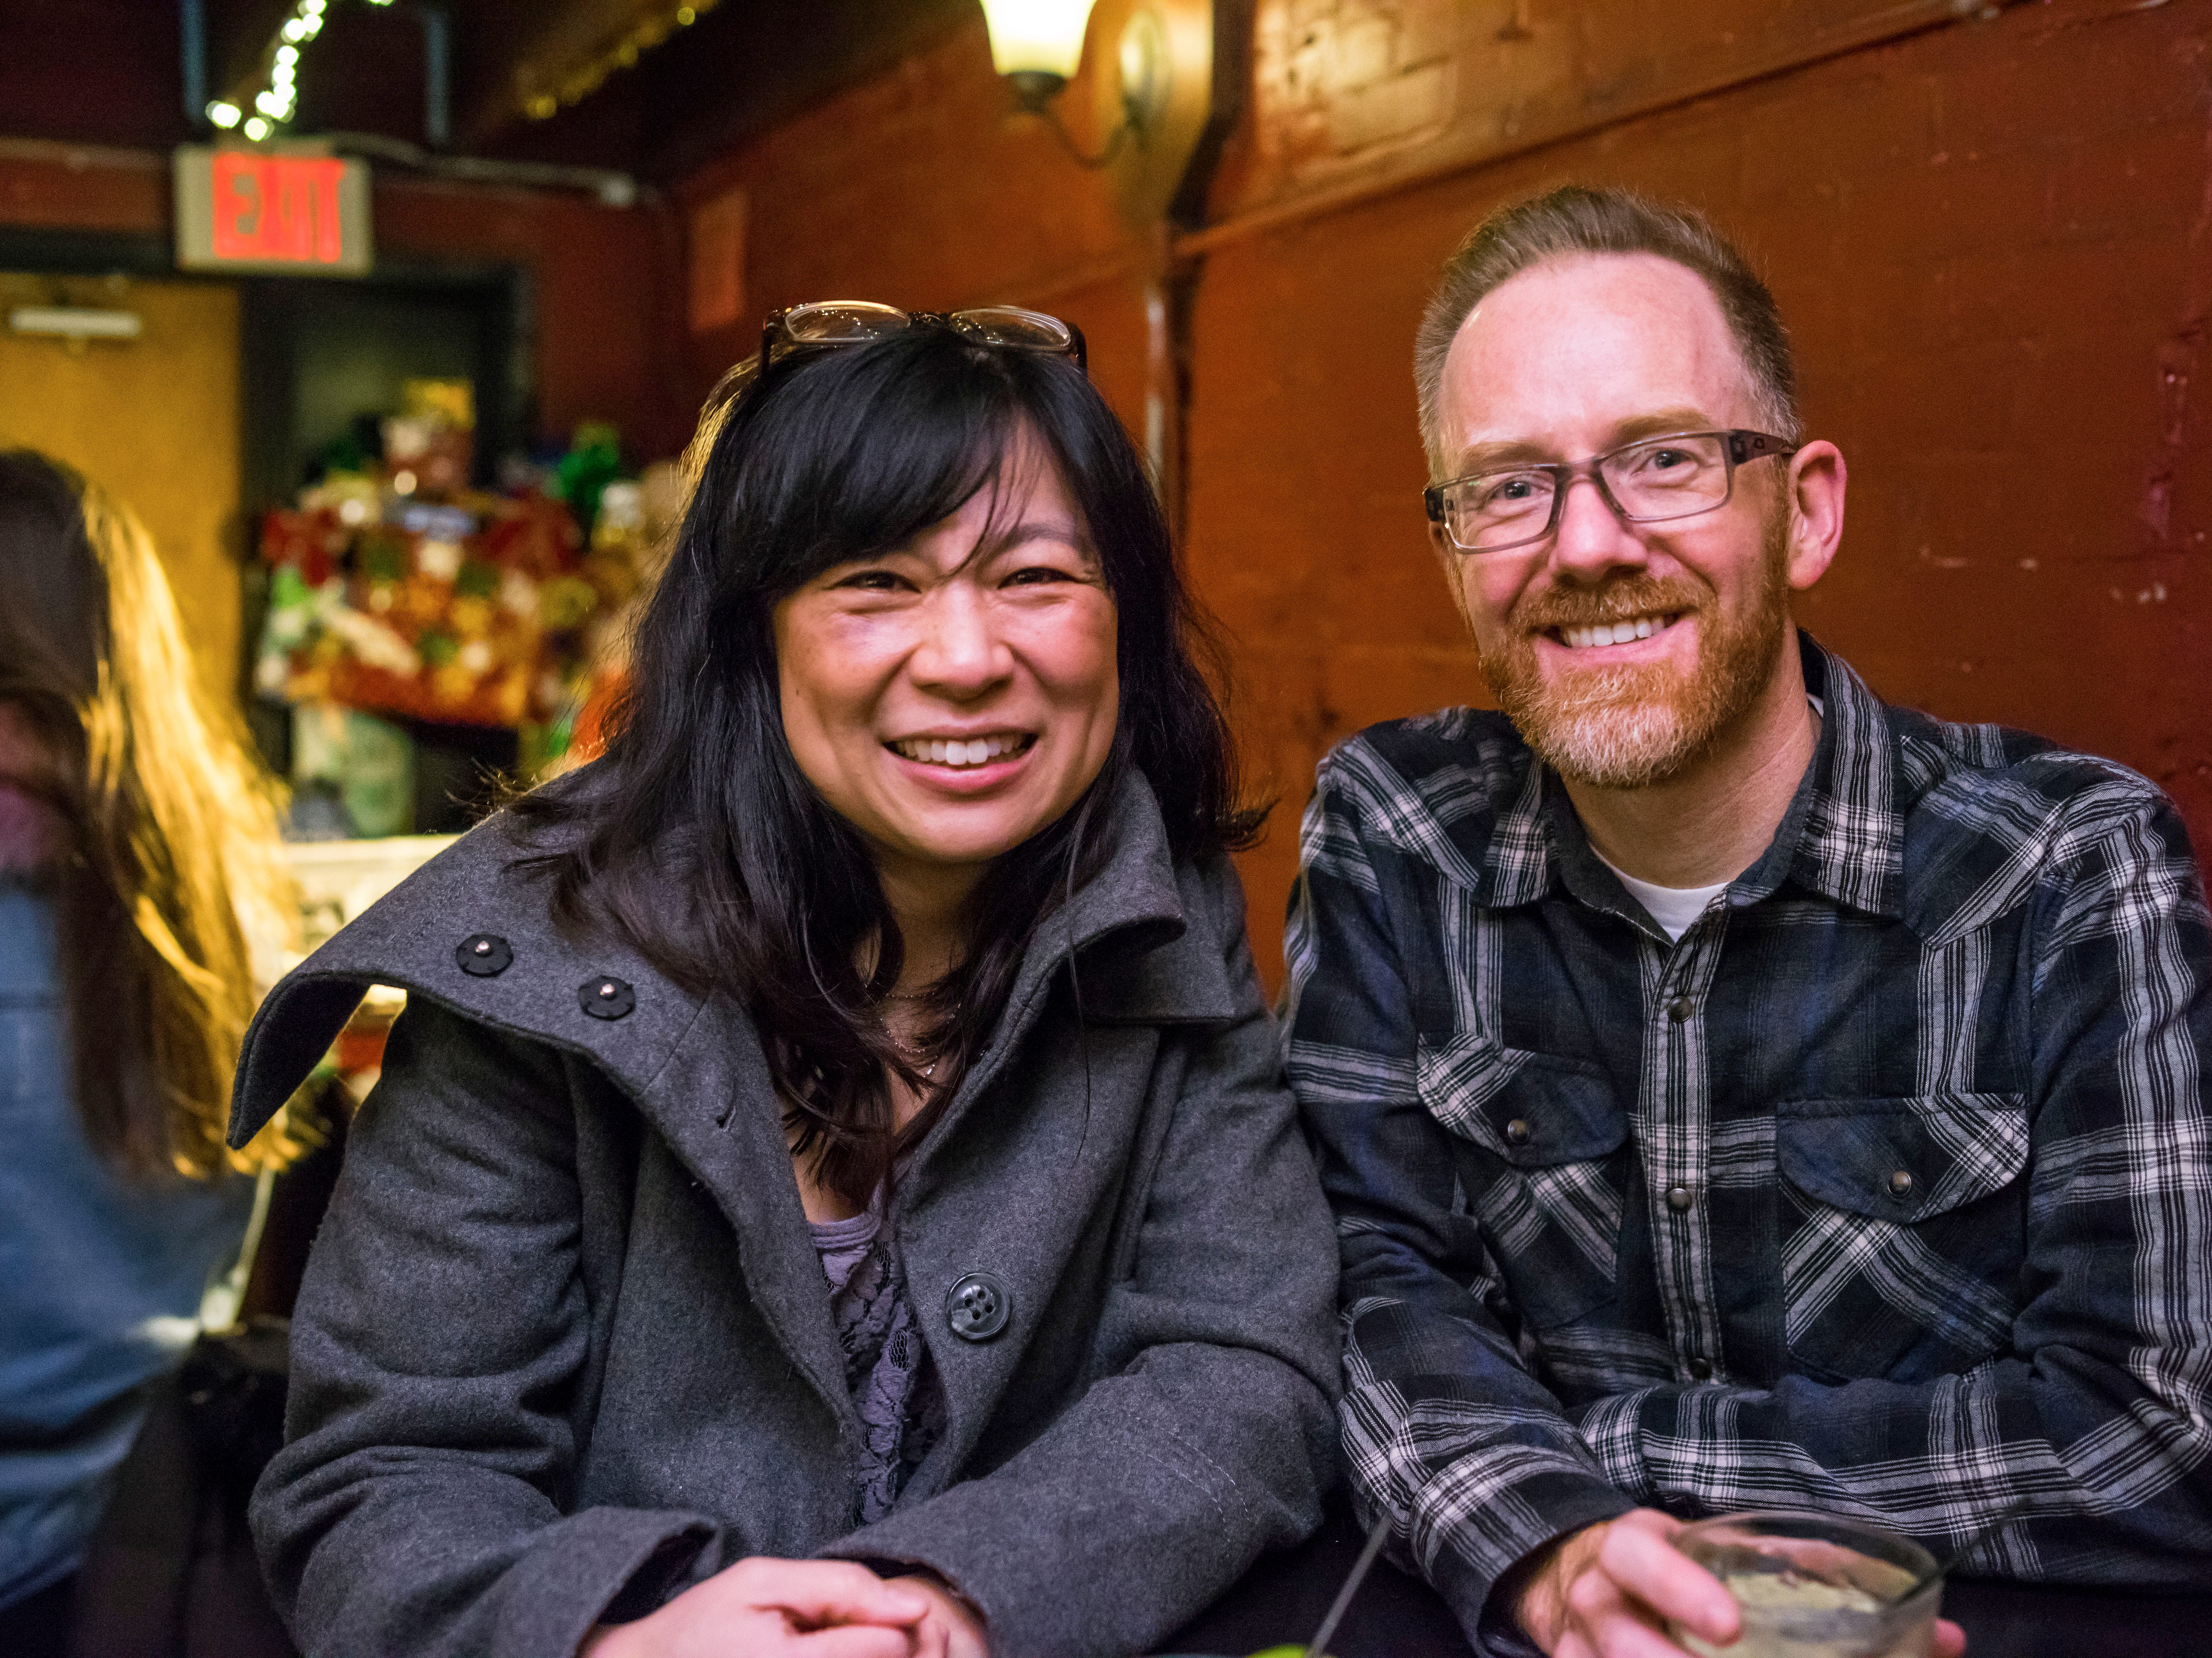 Laura Chavez, 42, and Paul Bruski, 48, both of Des Moines, having a good time, Friday, Dec. 21, at Vaudeville Mews.